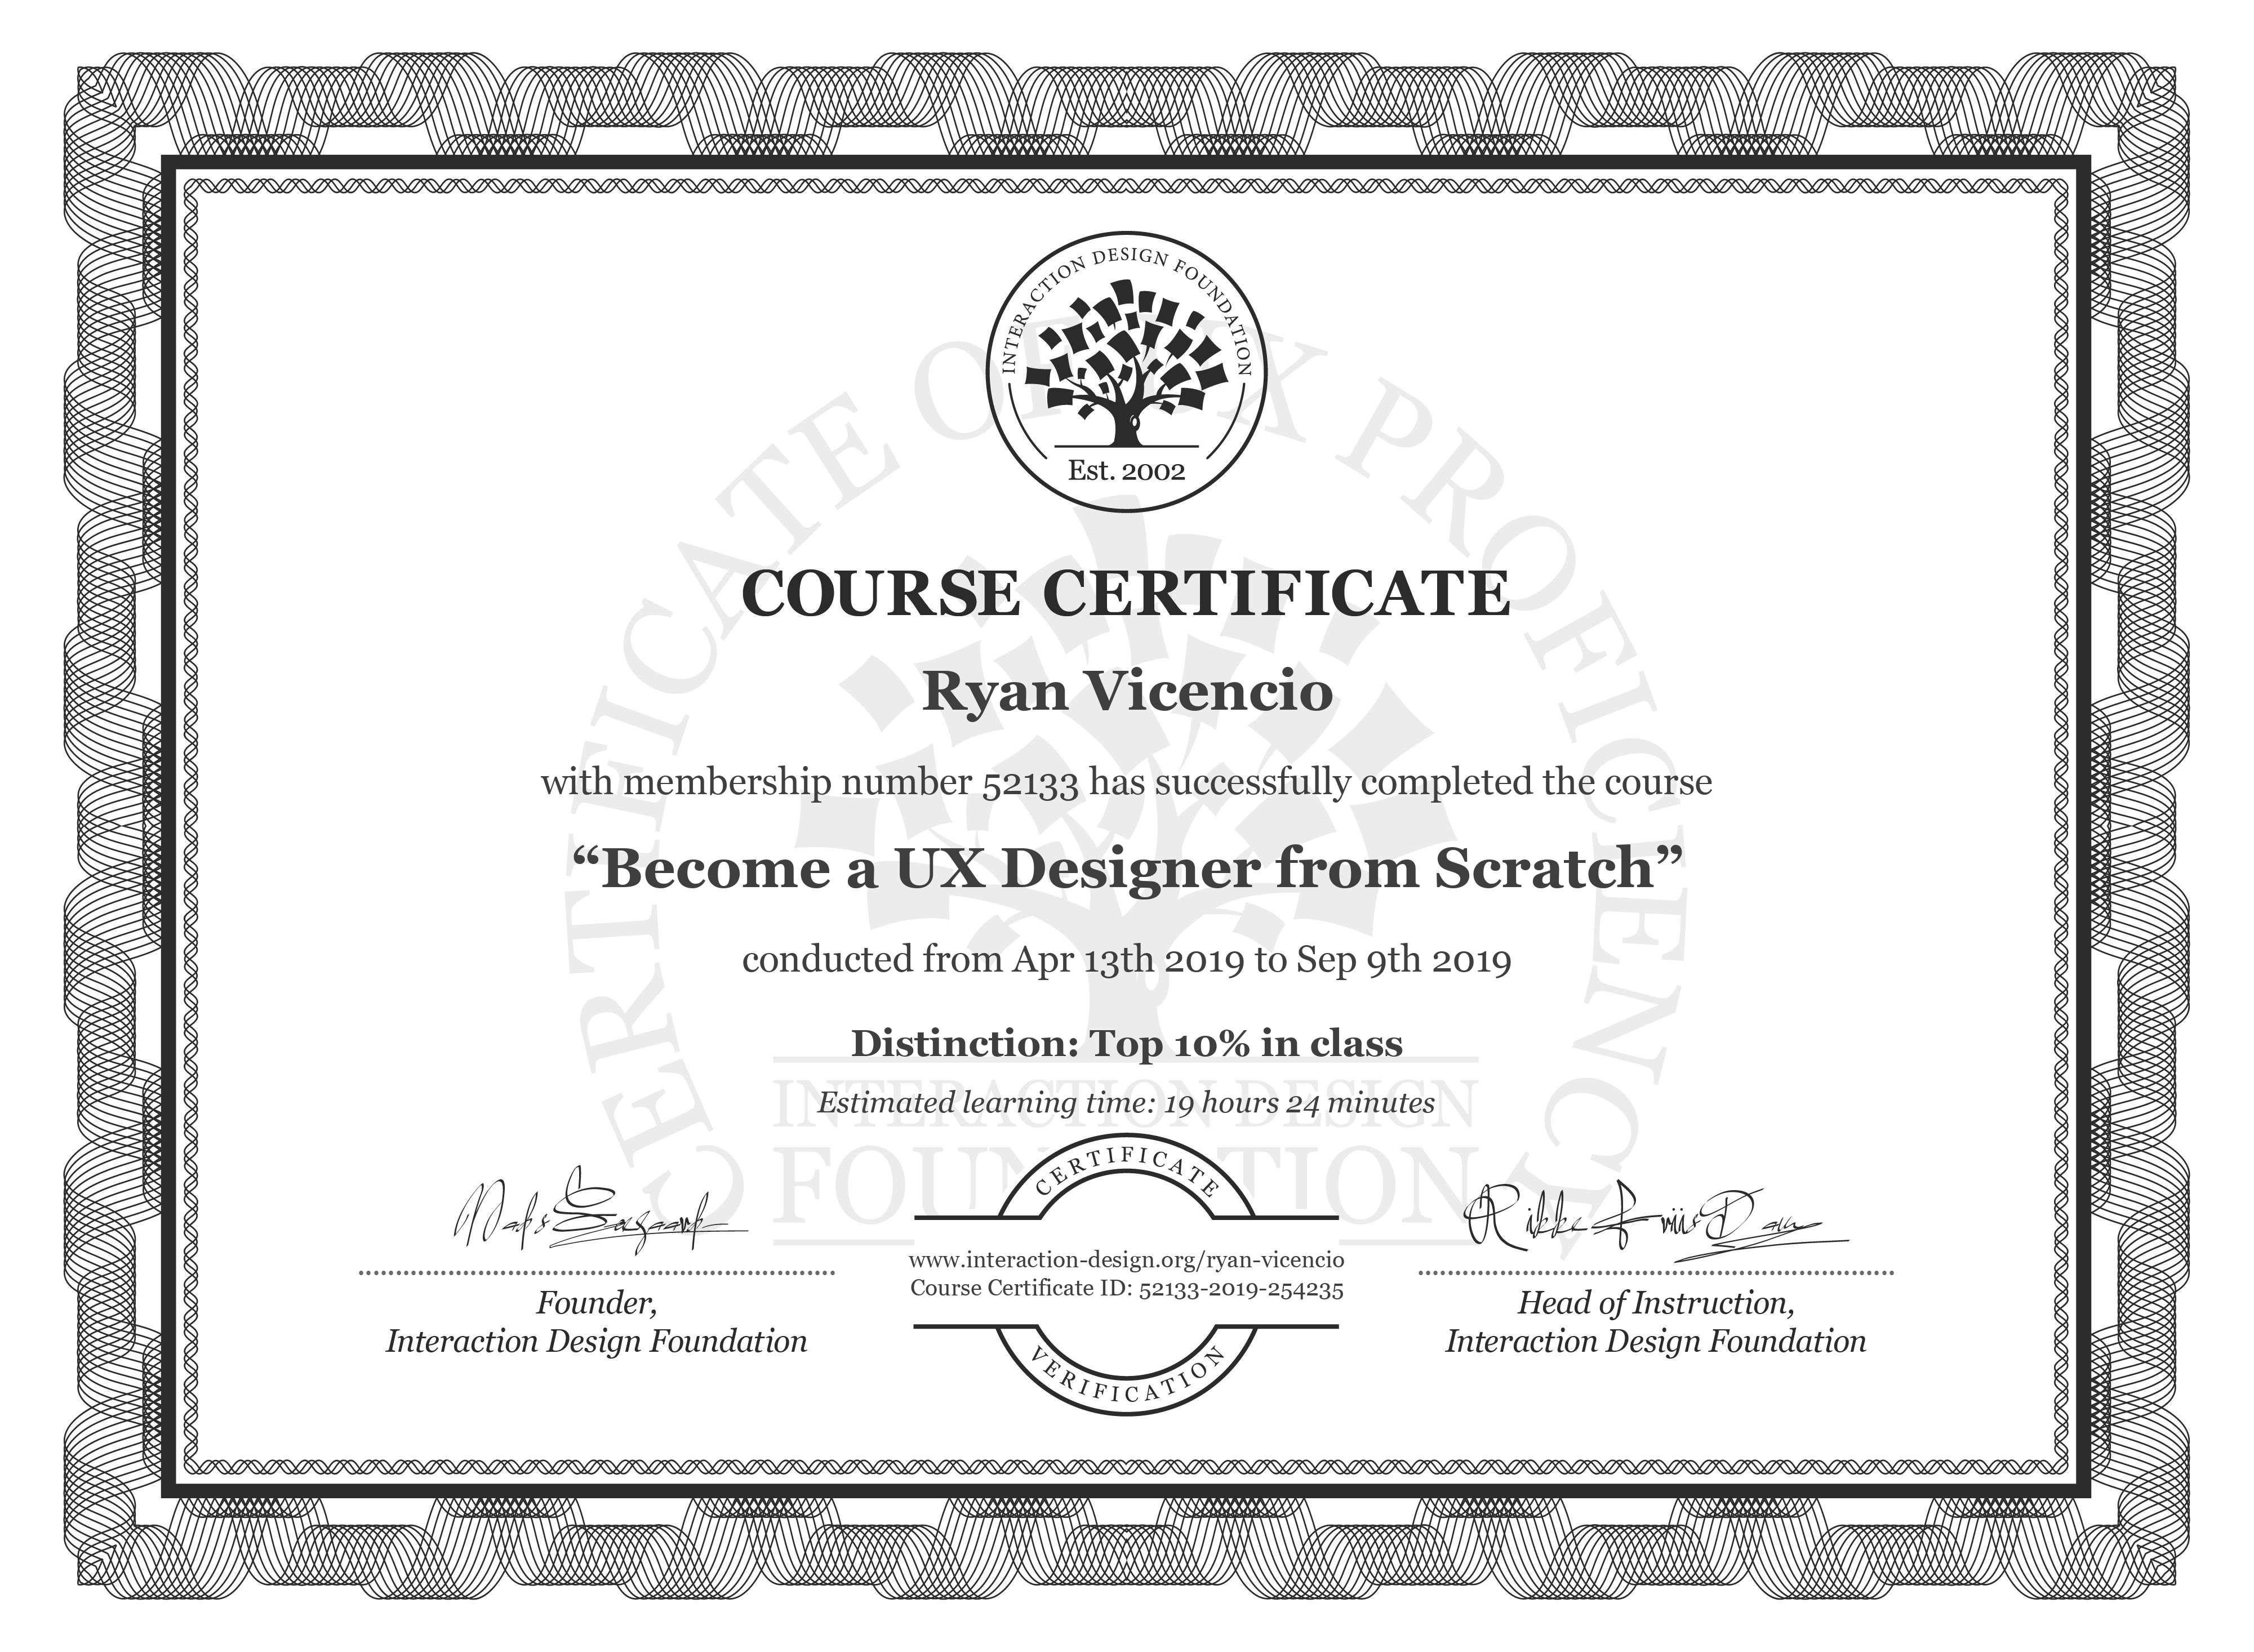 Ryan Vicencio's Course Certificate: User Experience: The Beginner's Guide